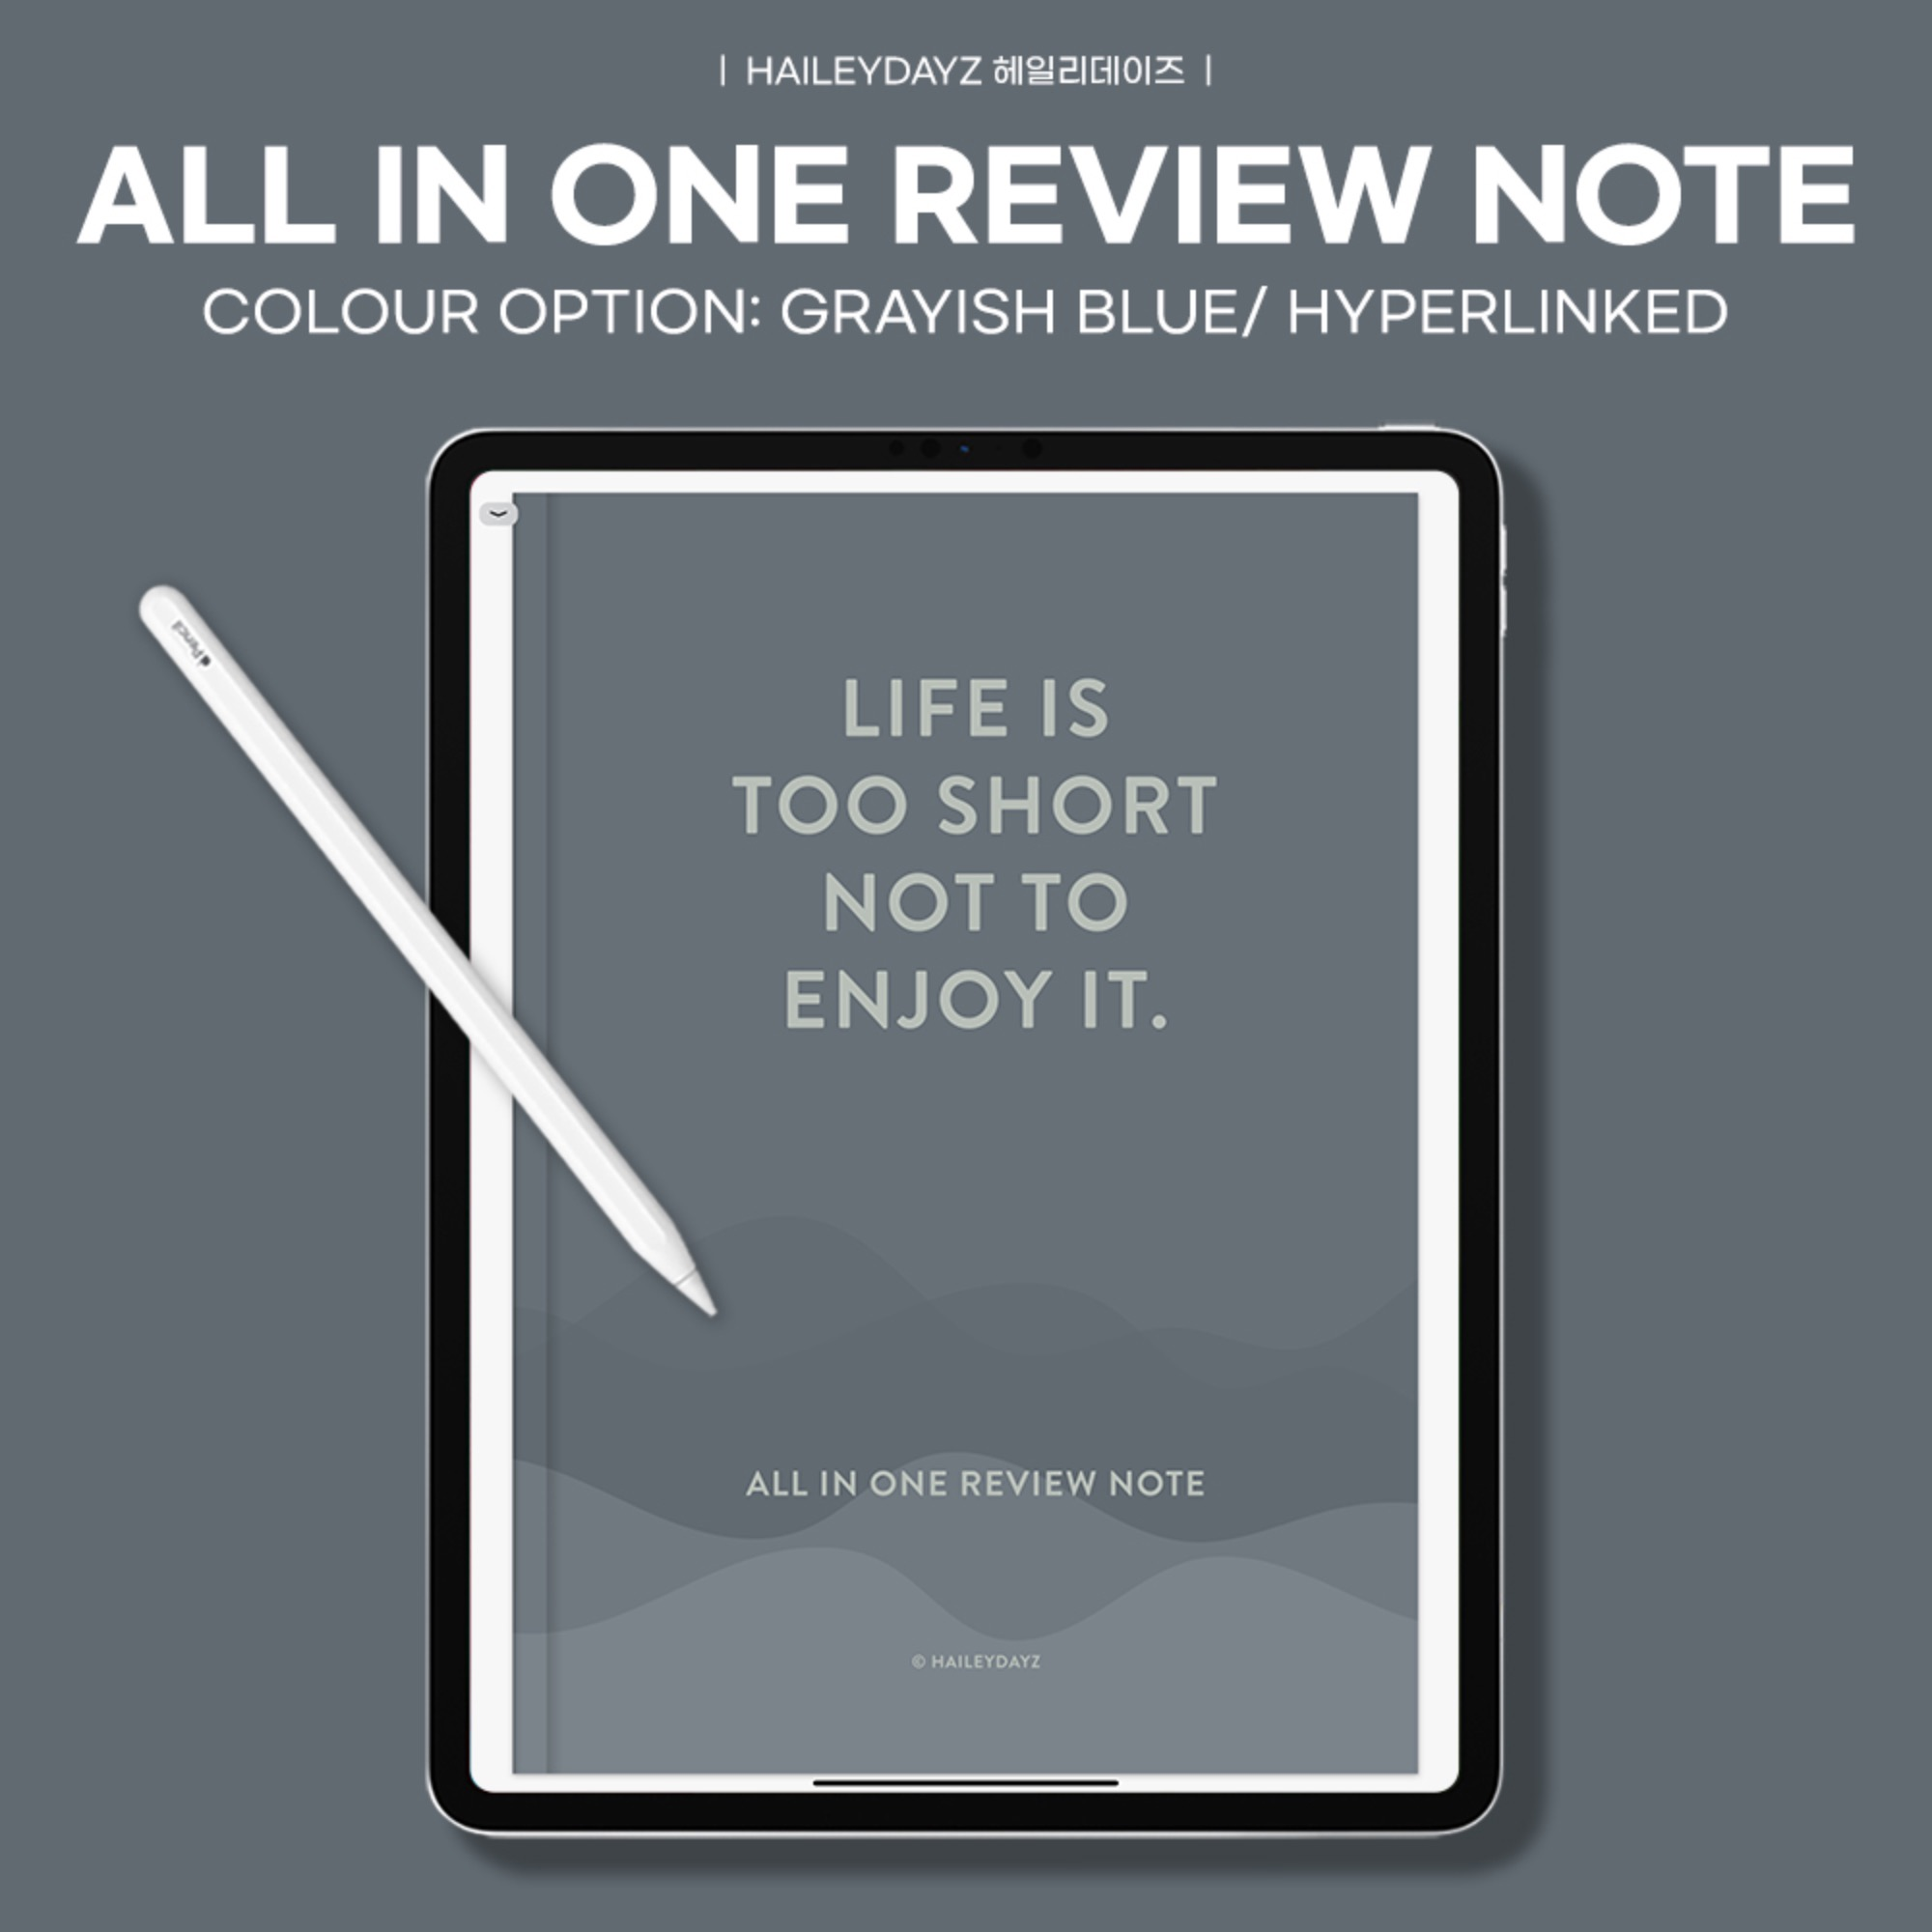 All in one review note (Grayish Blue)